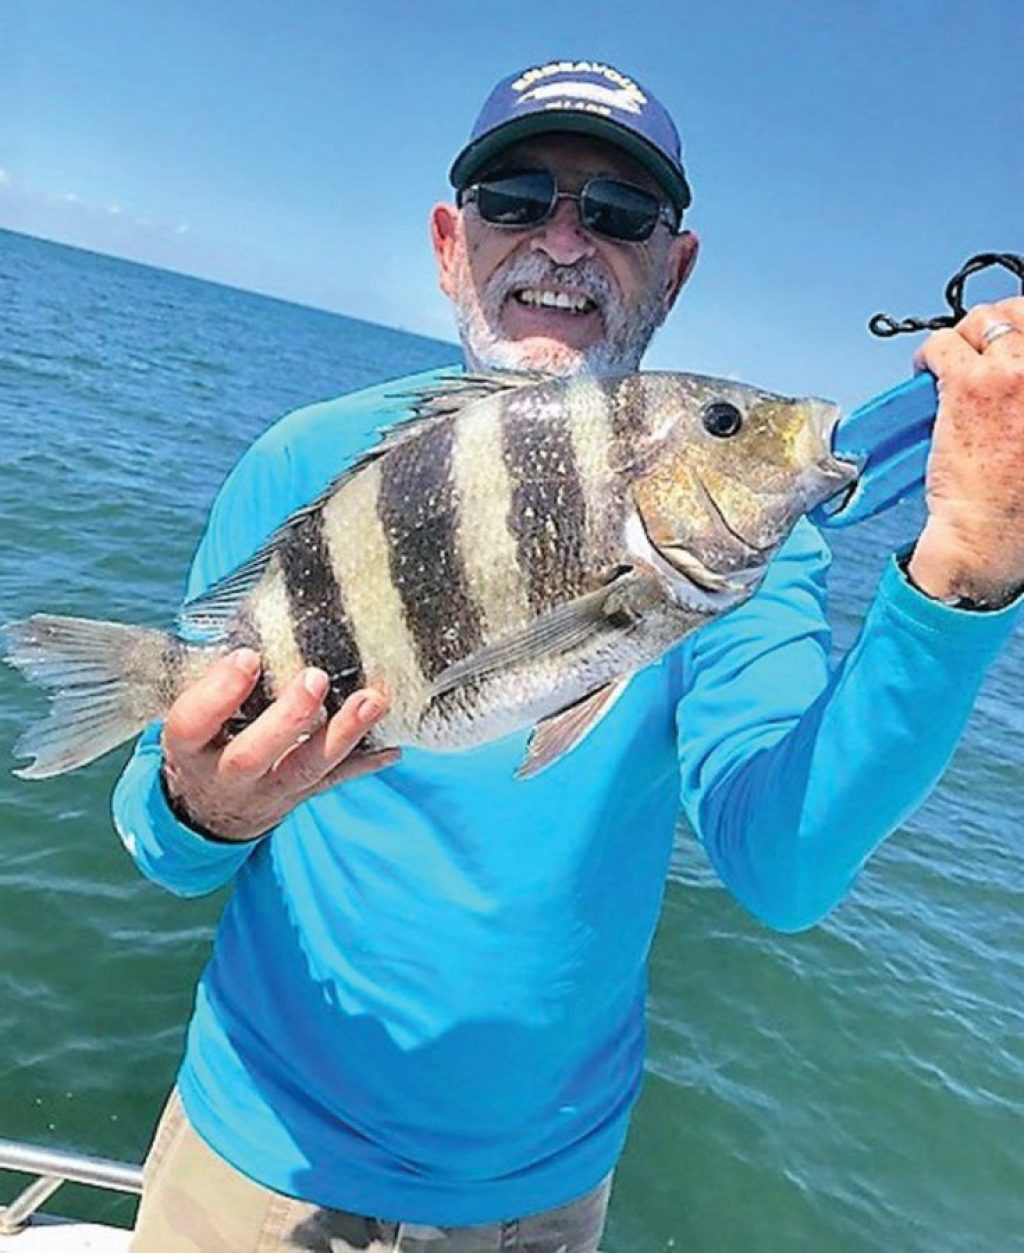 Wes Pyfer of Irving caught this nice sheepshead and several others while free lining live shrimp along the North Jetty near Galveston.